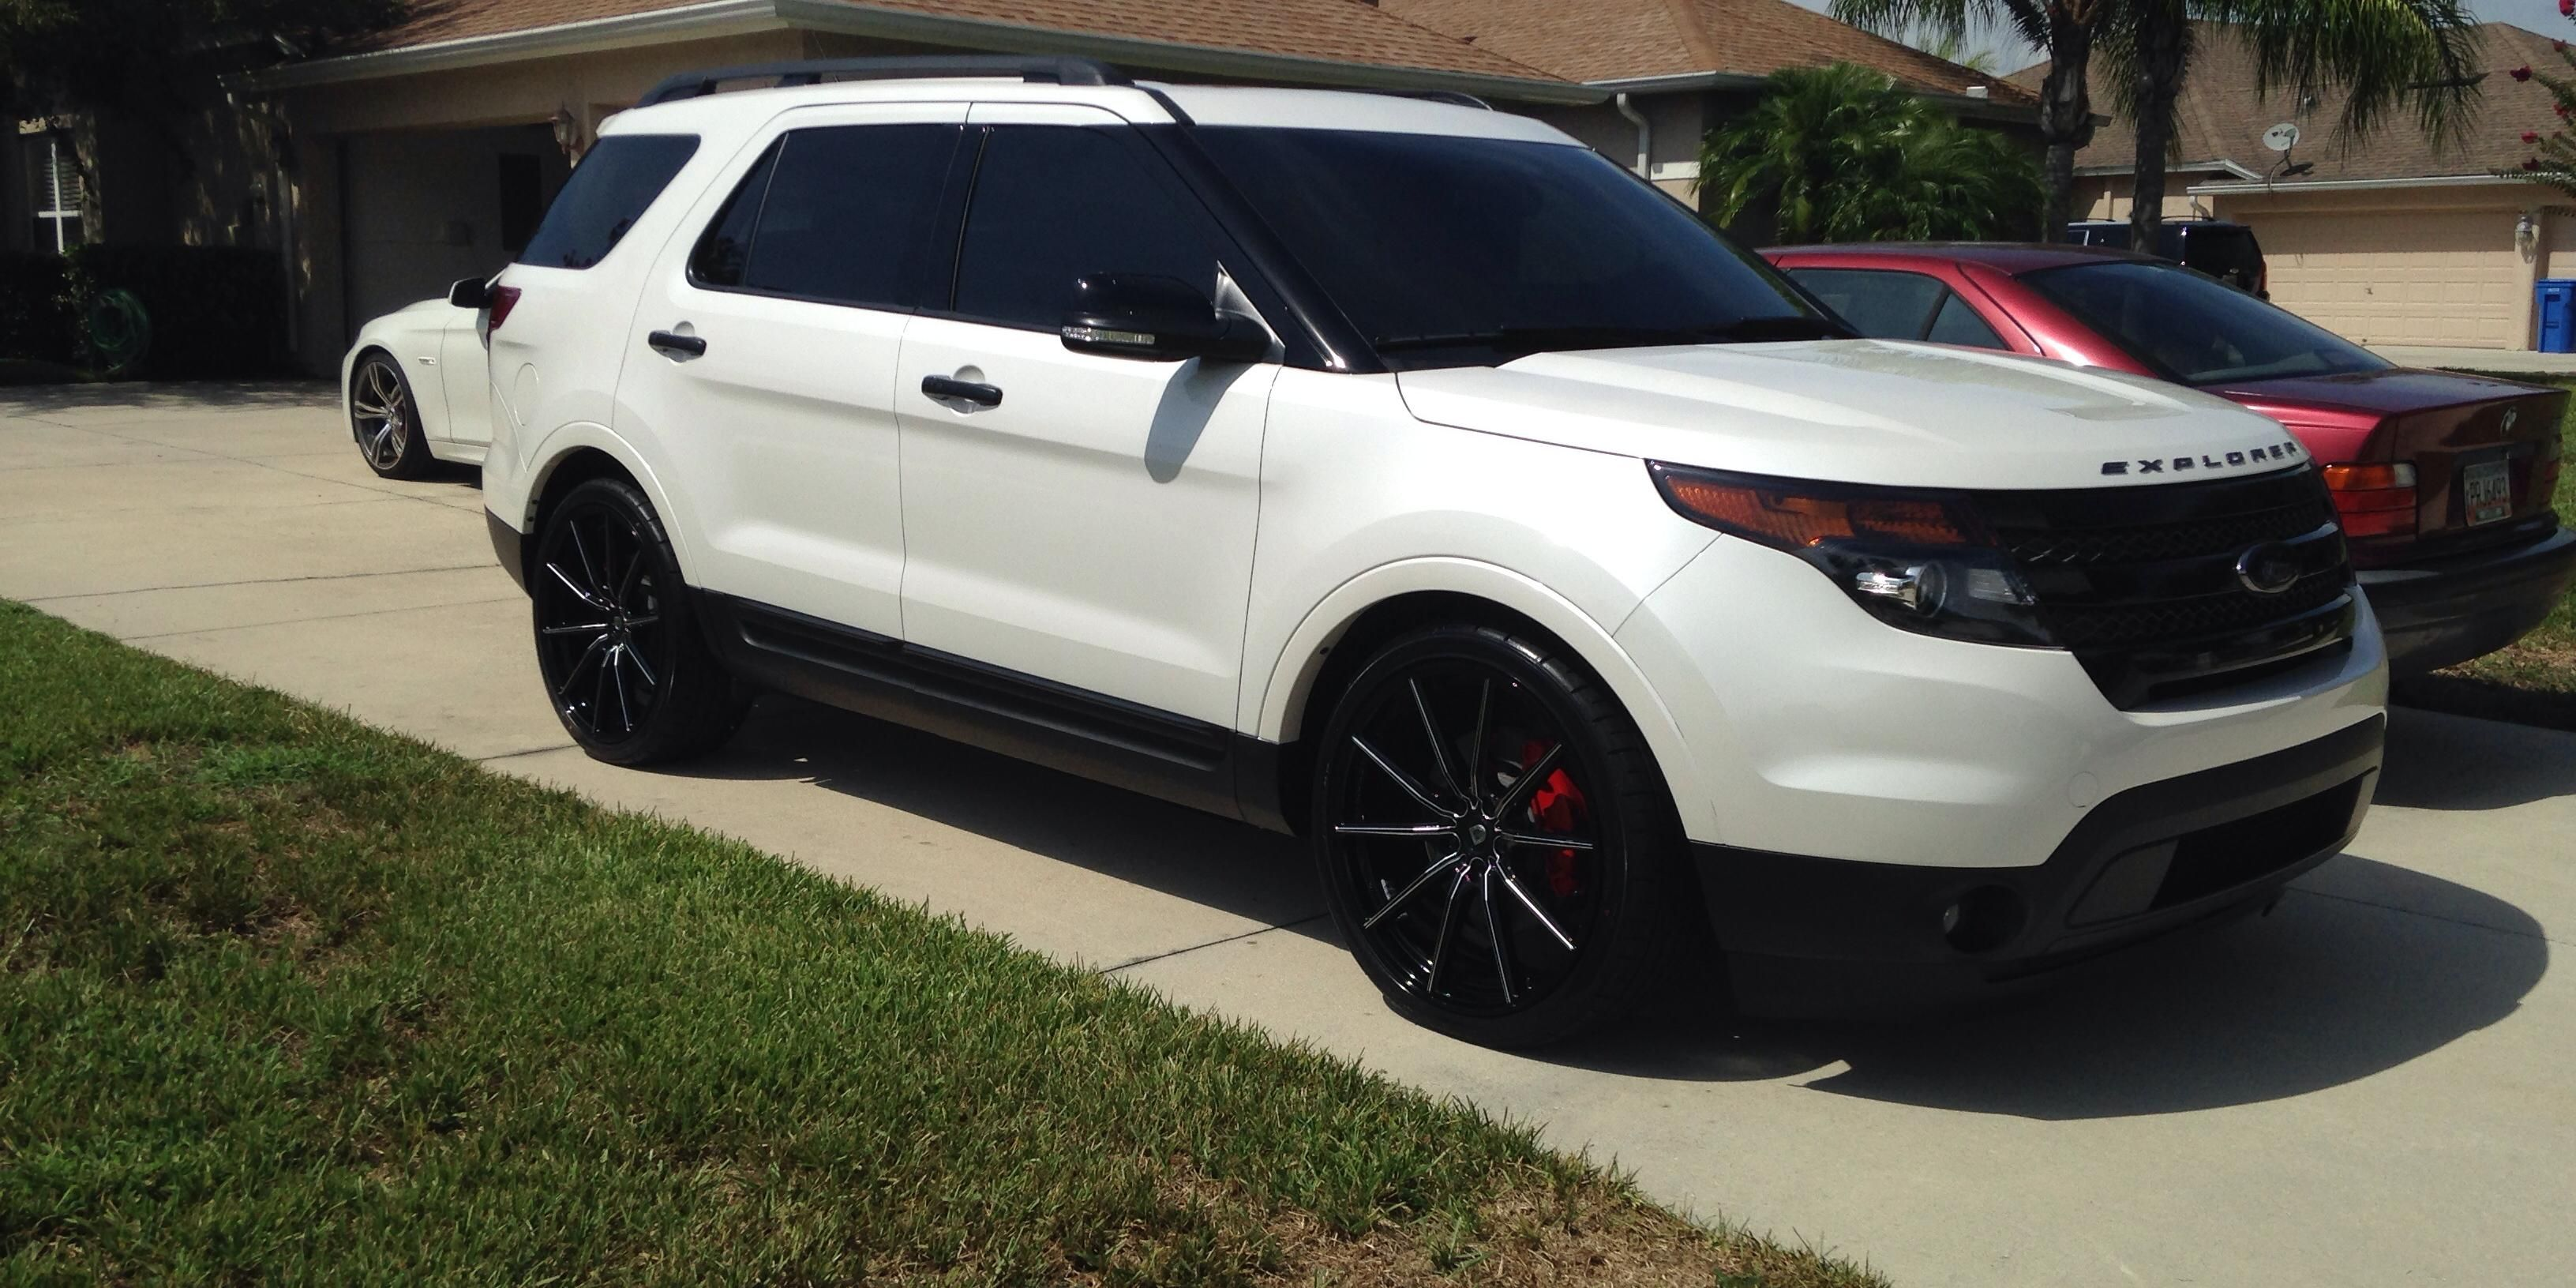 Exactly how i plan for the explorer to look once the guys get done with it cant wait